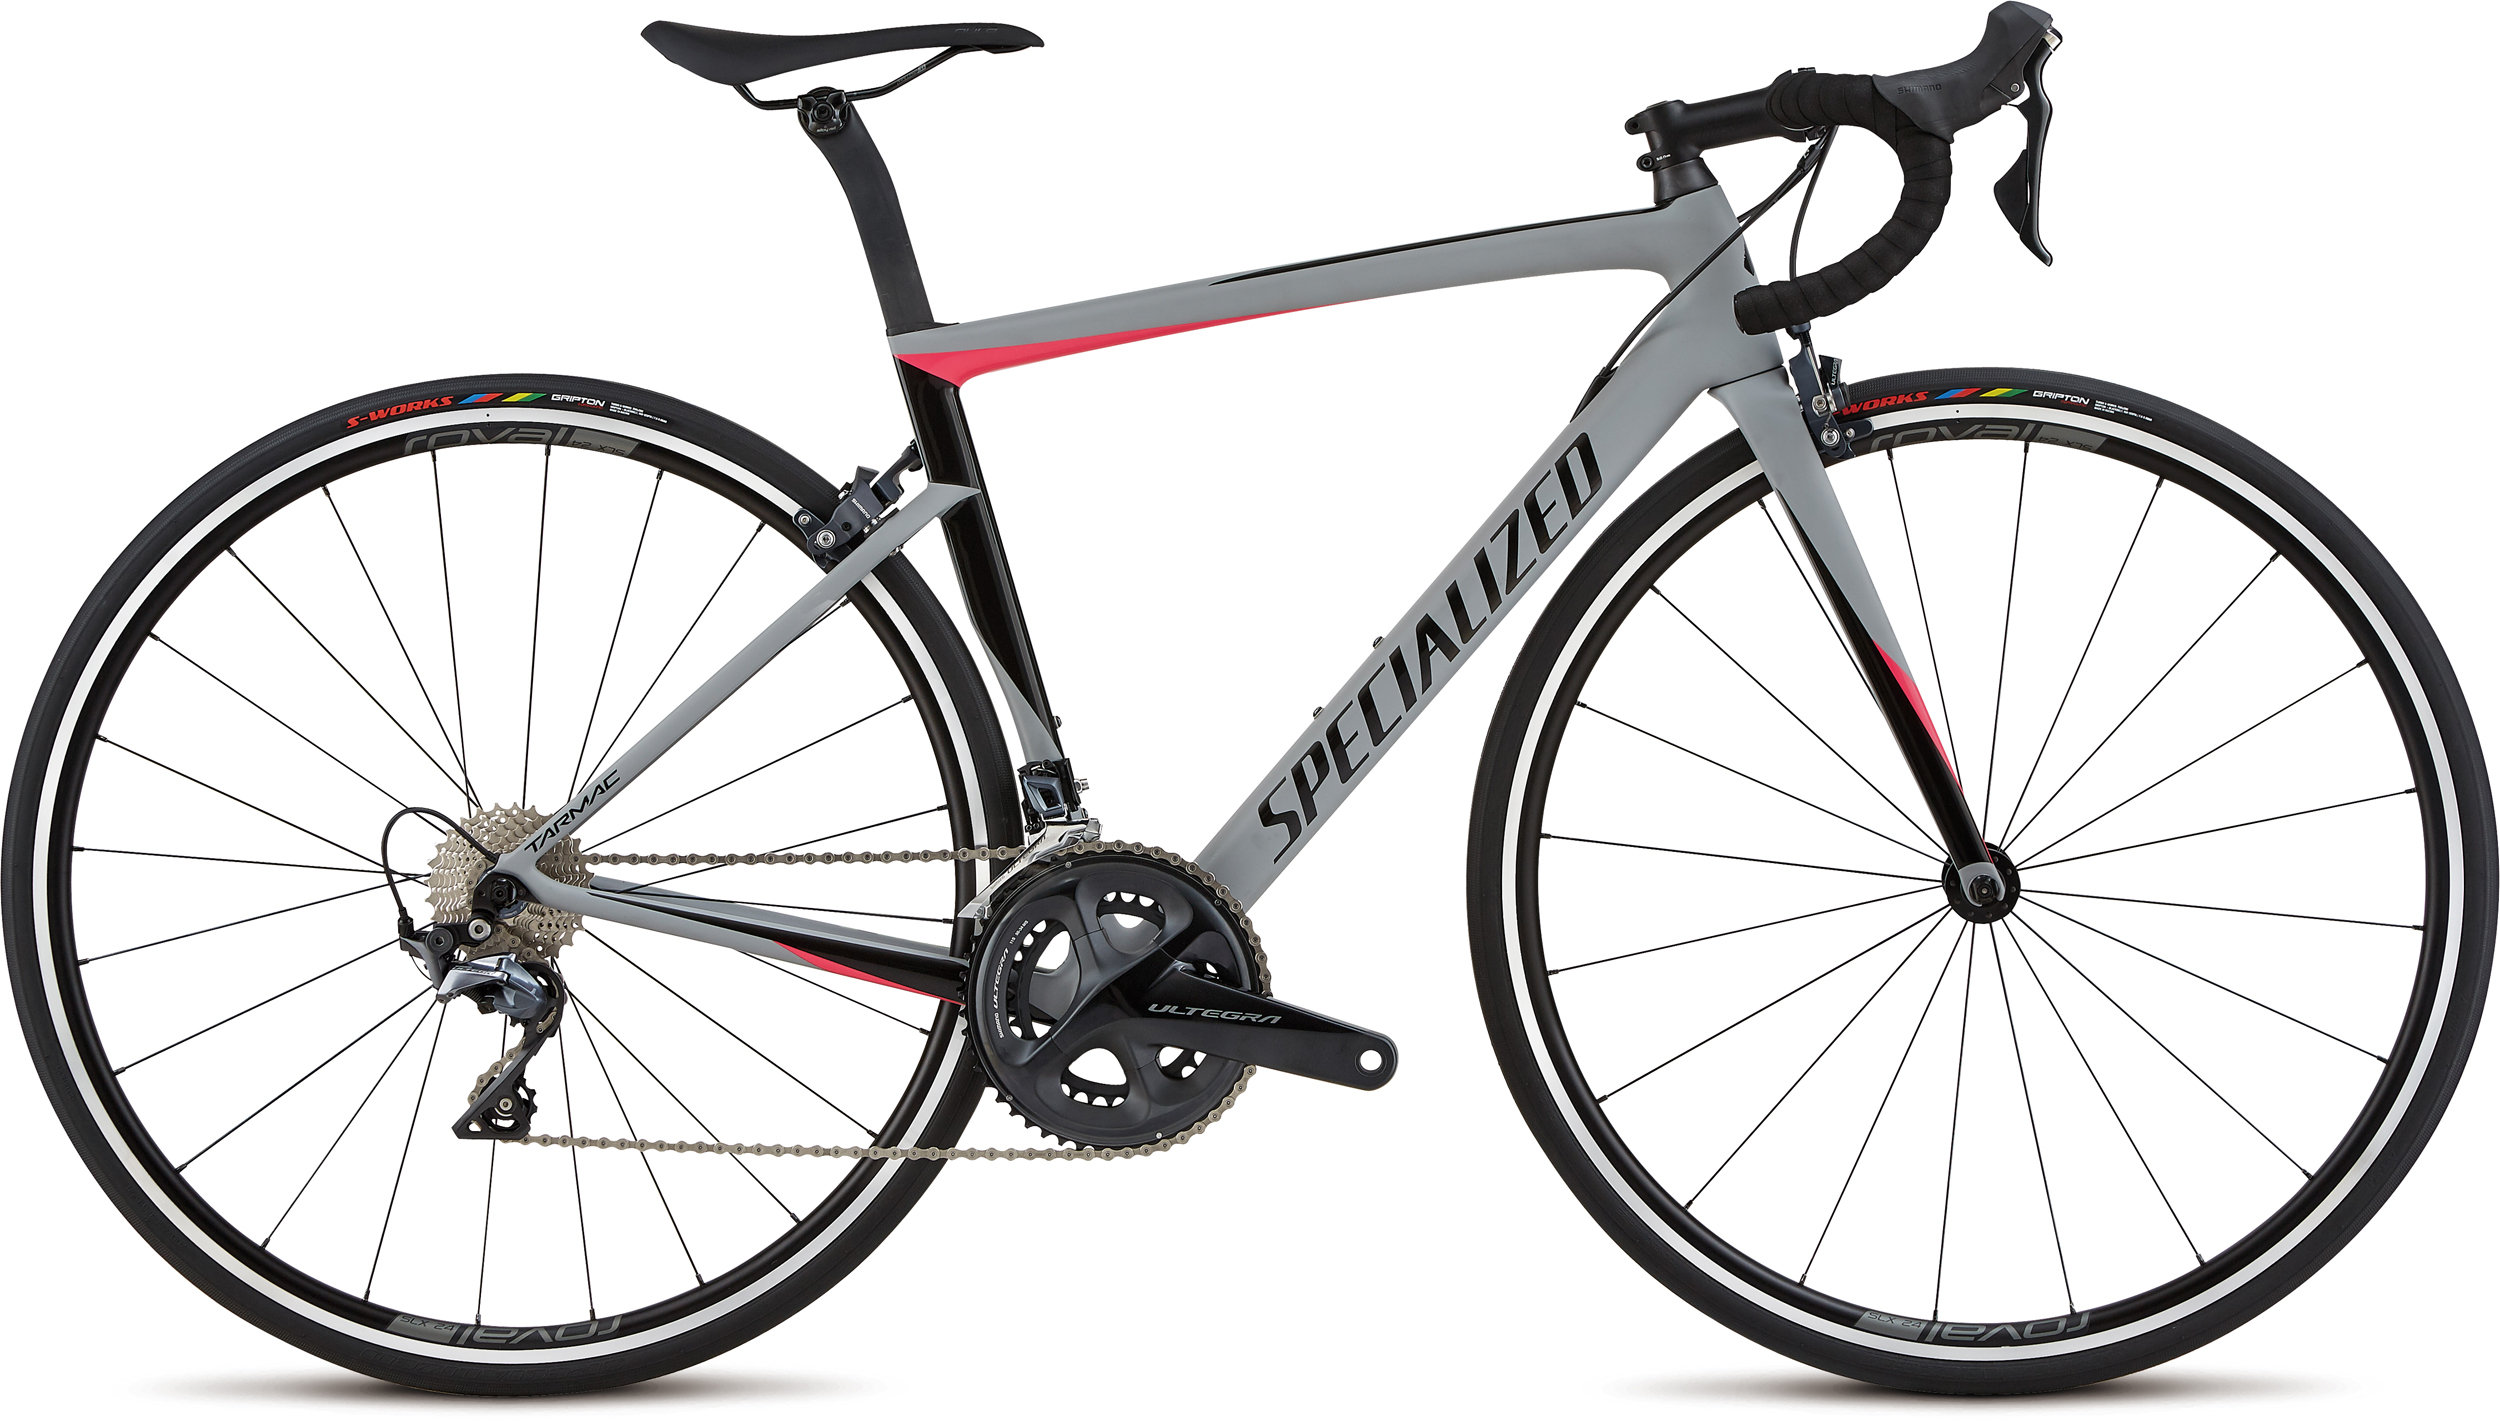 Specialized Women´s Tarmac Expert Satin / Gloss / Cool Gray /  Acid Pink / Black 44 - Bike Maniac